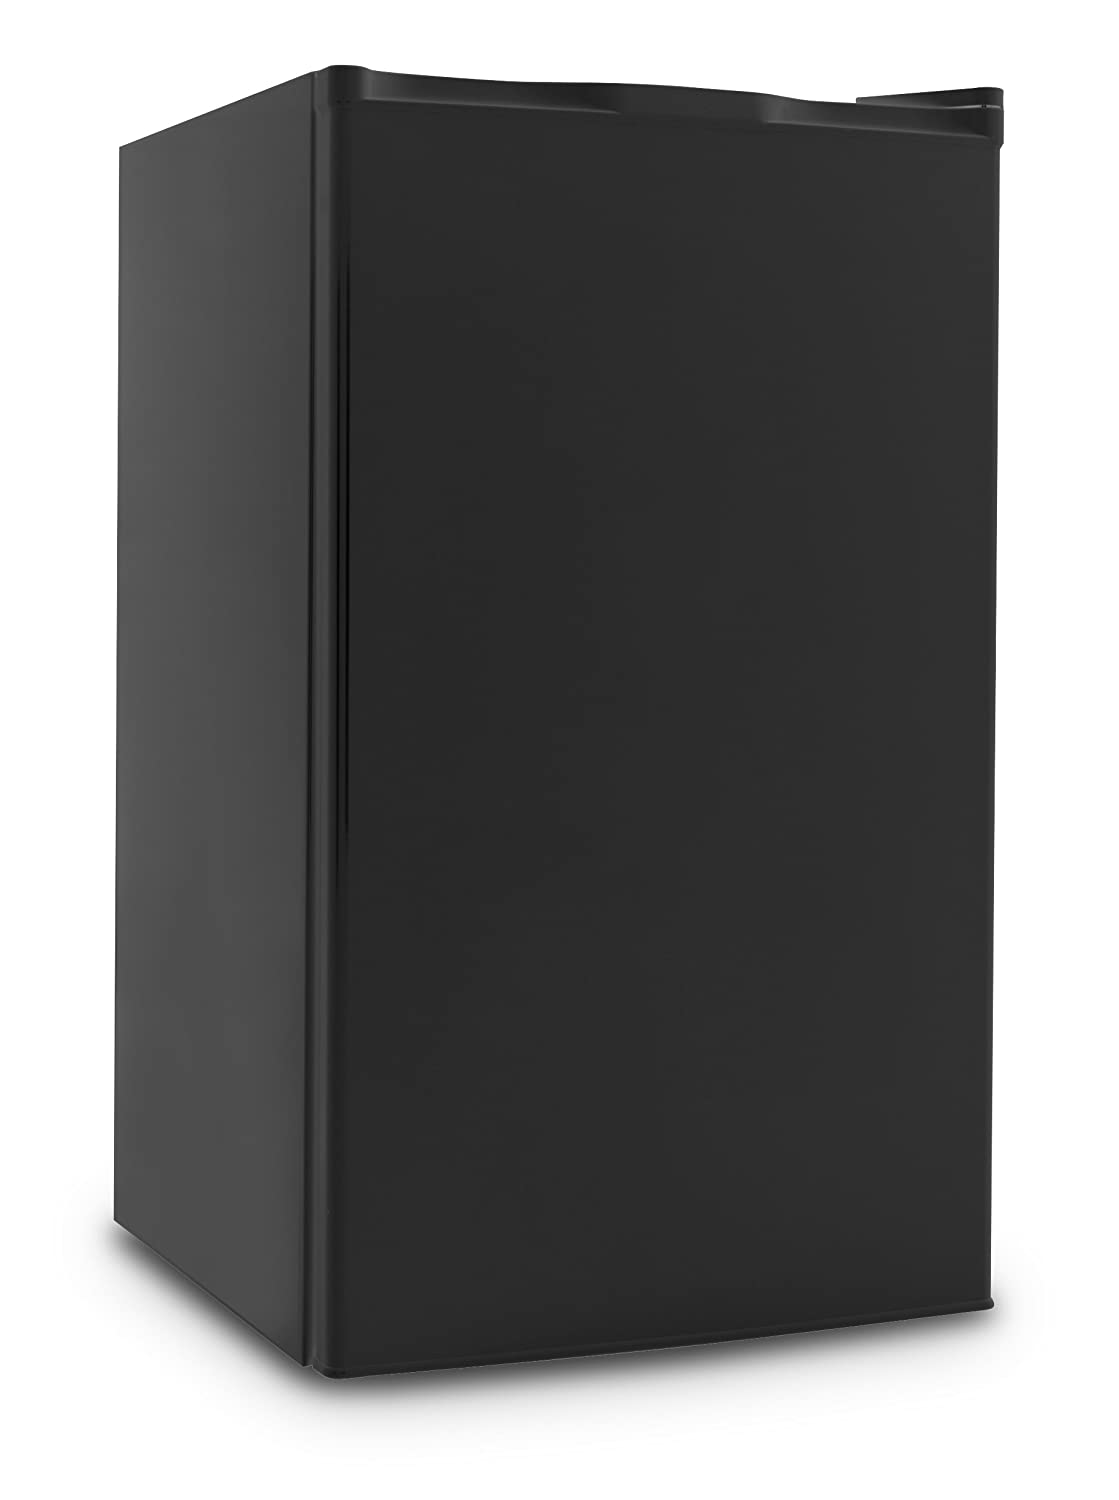 Commercial Cool CCR40B 4.0 Cu.Ft. Compact Fridge with R600a Refrigerant, Black